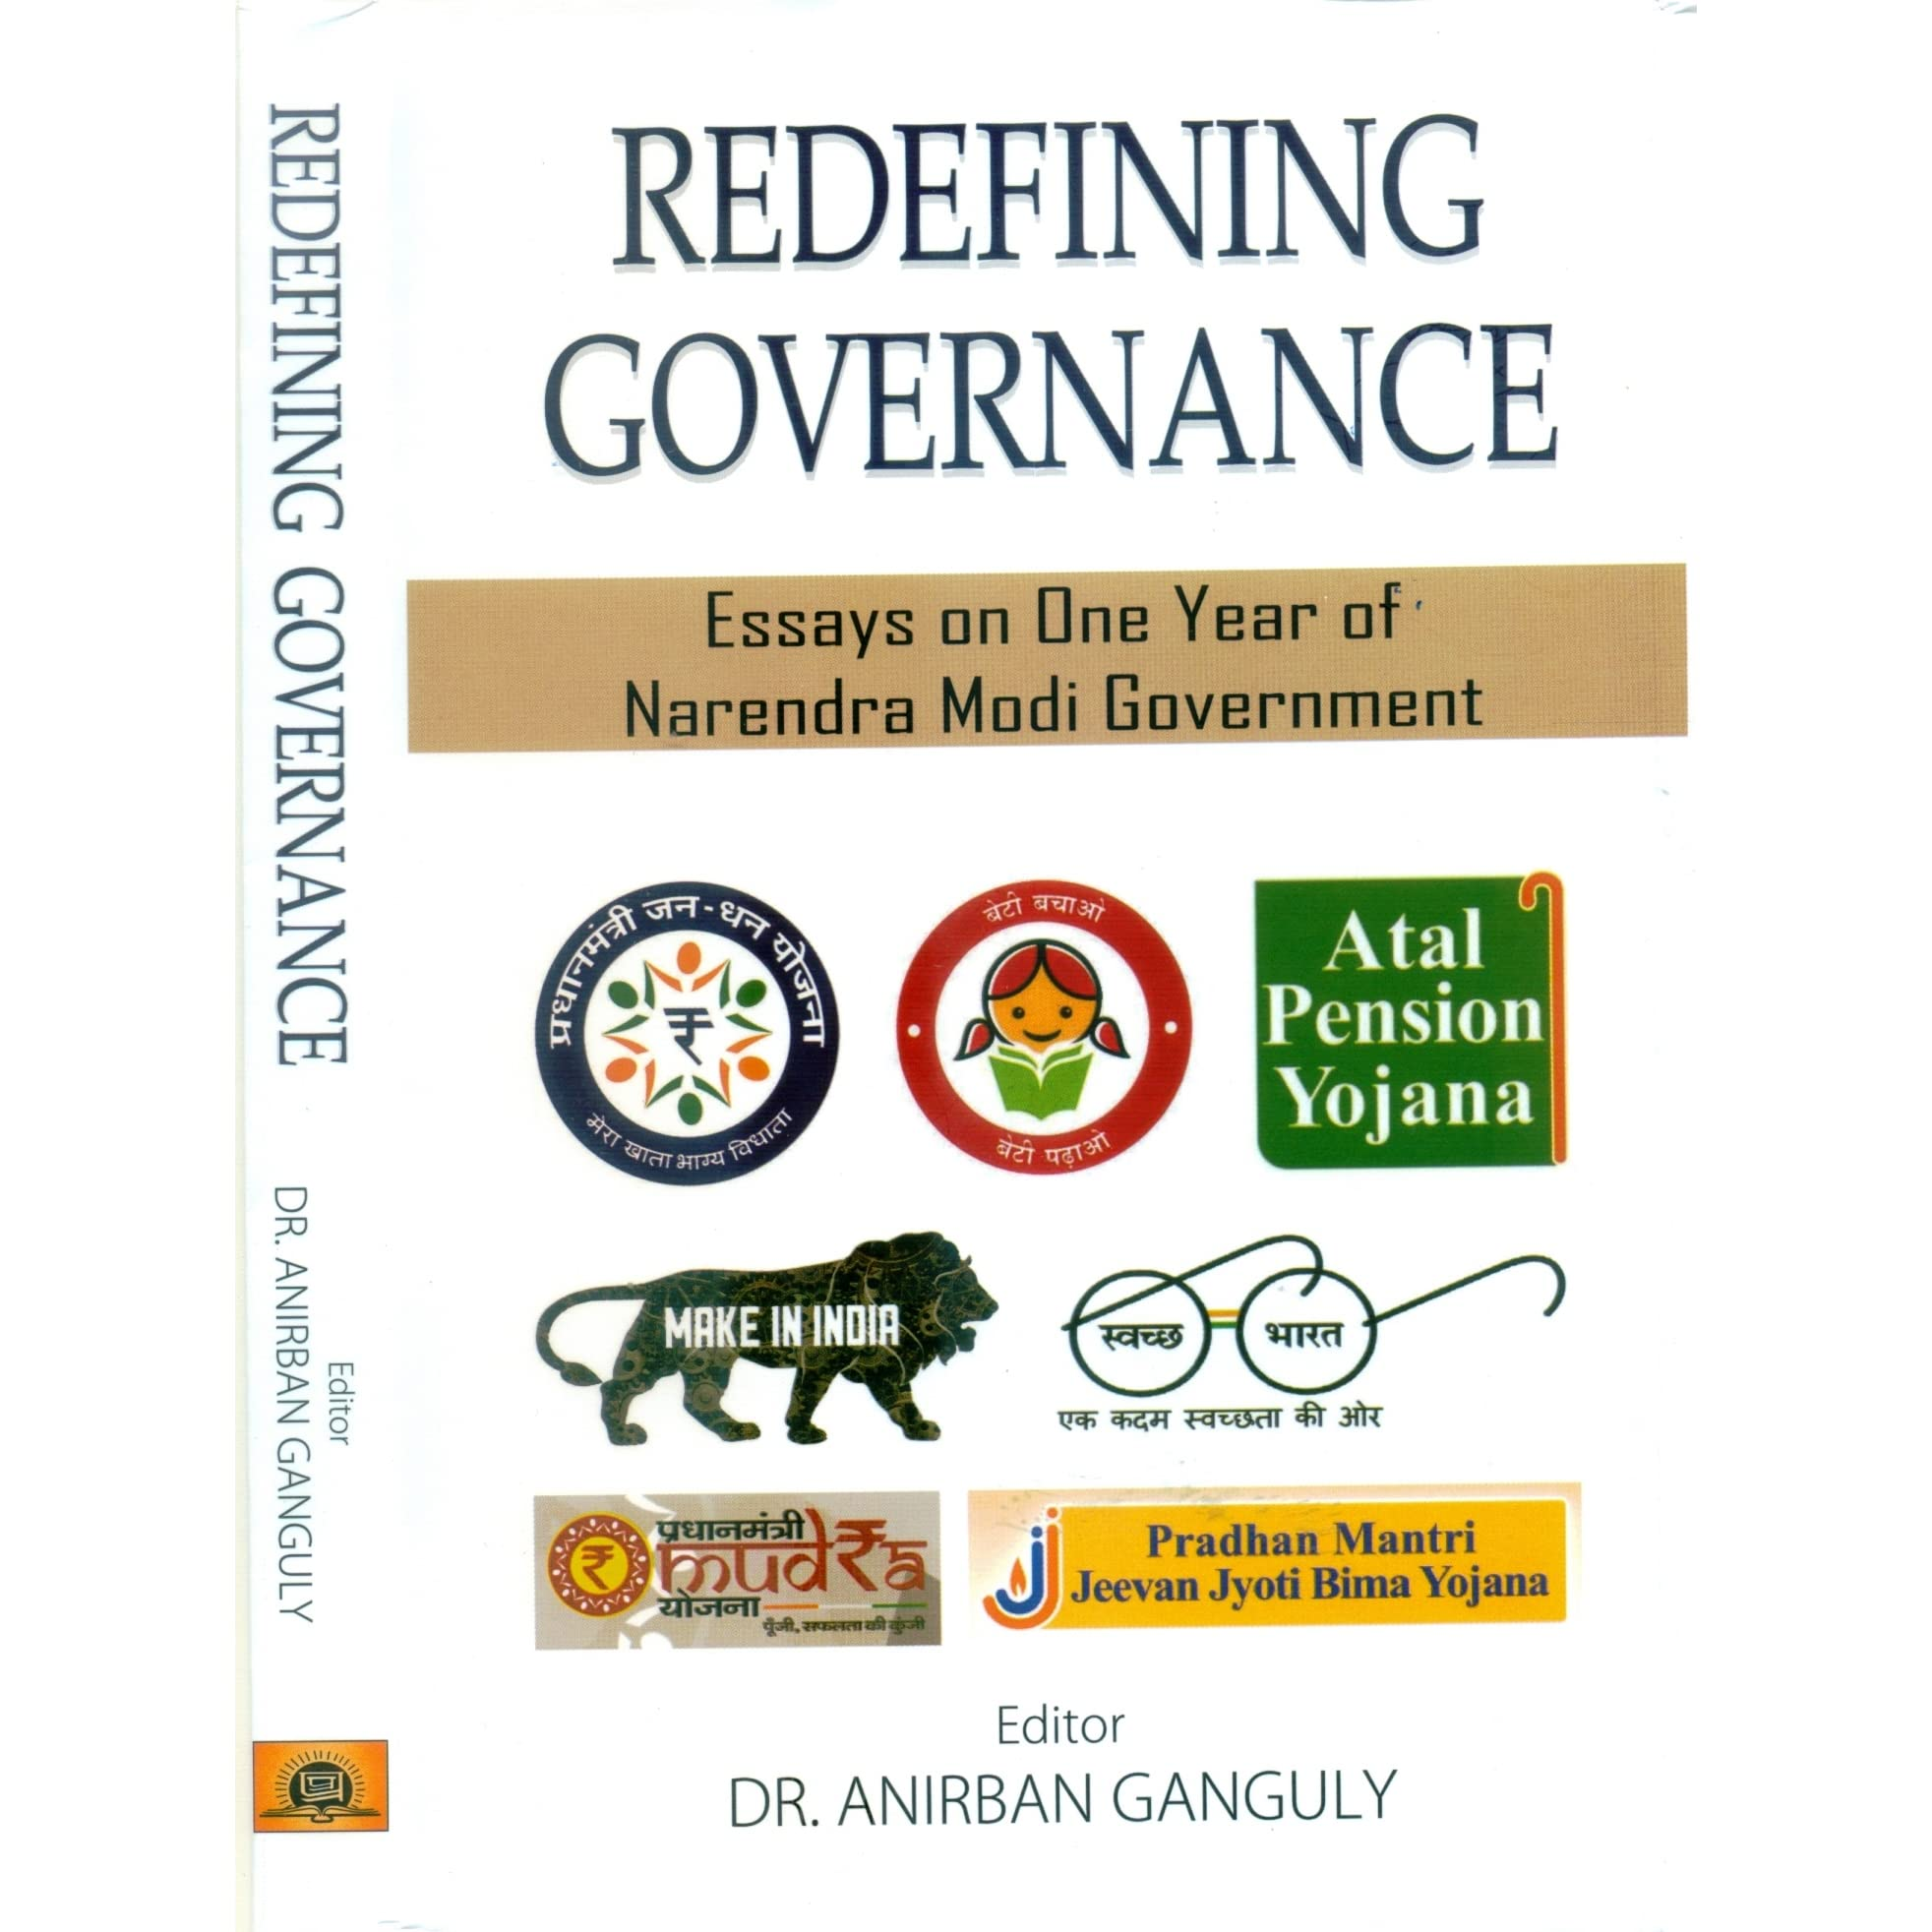 redefining governance essays on one year of narendra modi redefining governance essays on one year of narendra modi government by anirban ganguly reviews discussion bookclubs lists